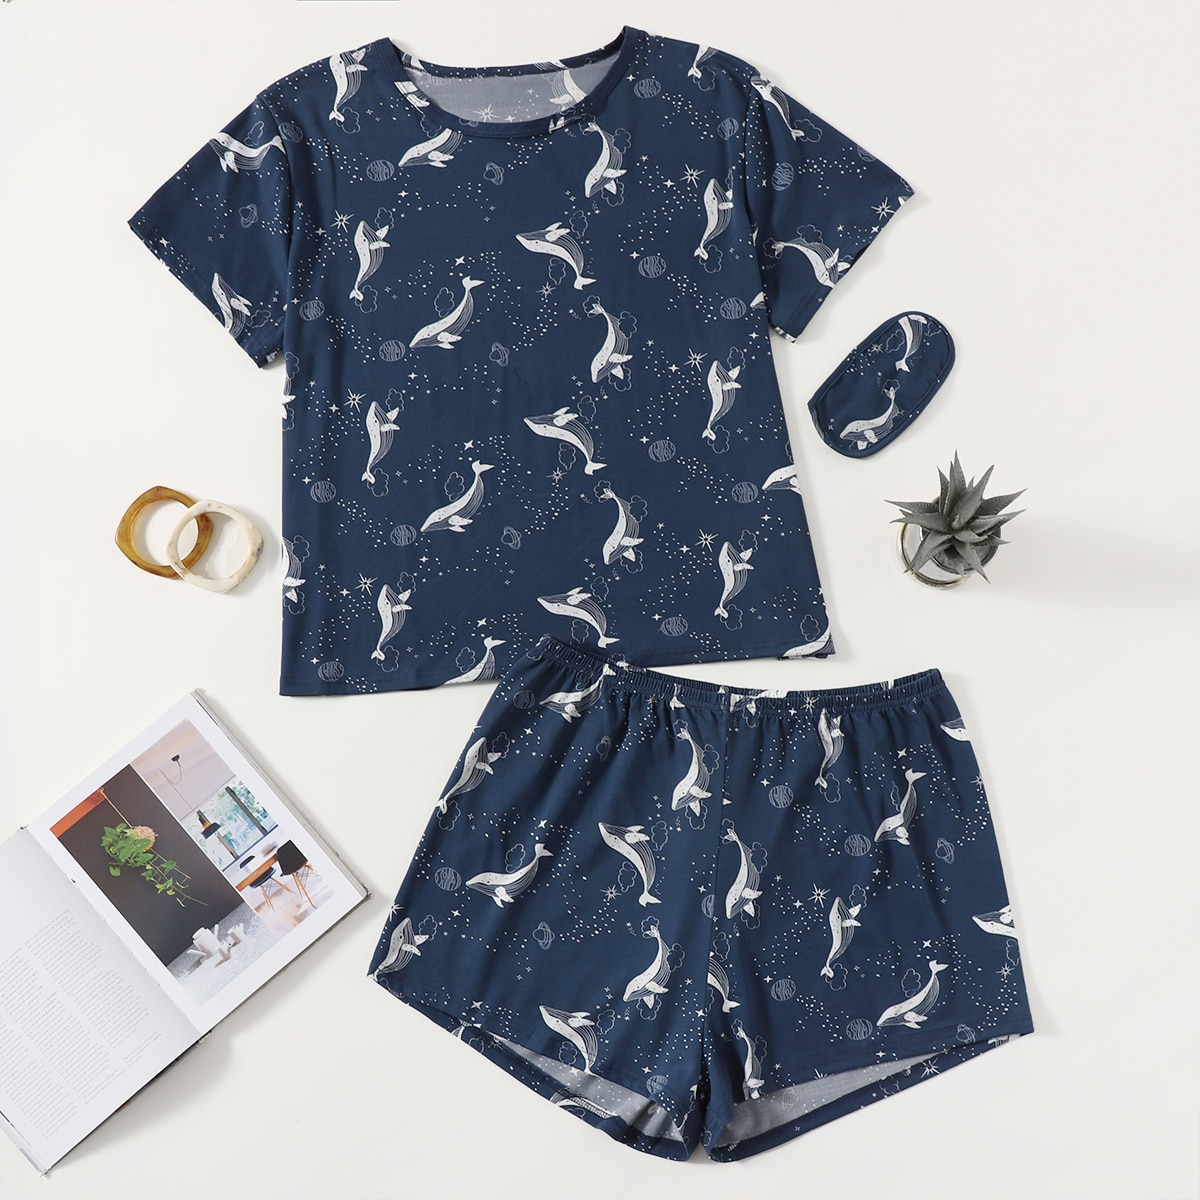 Plus Whale And Galaxy Print Pajama Set With Eye Cover, SHEIN  - buy with discount